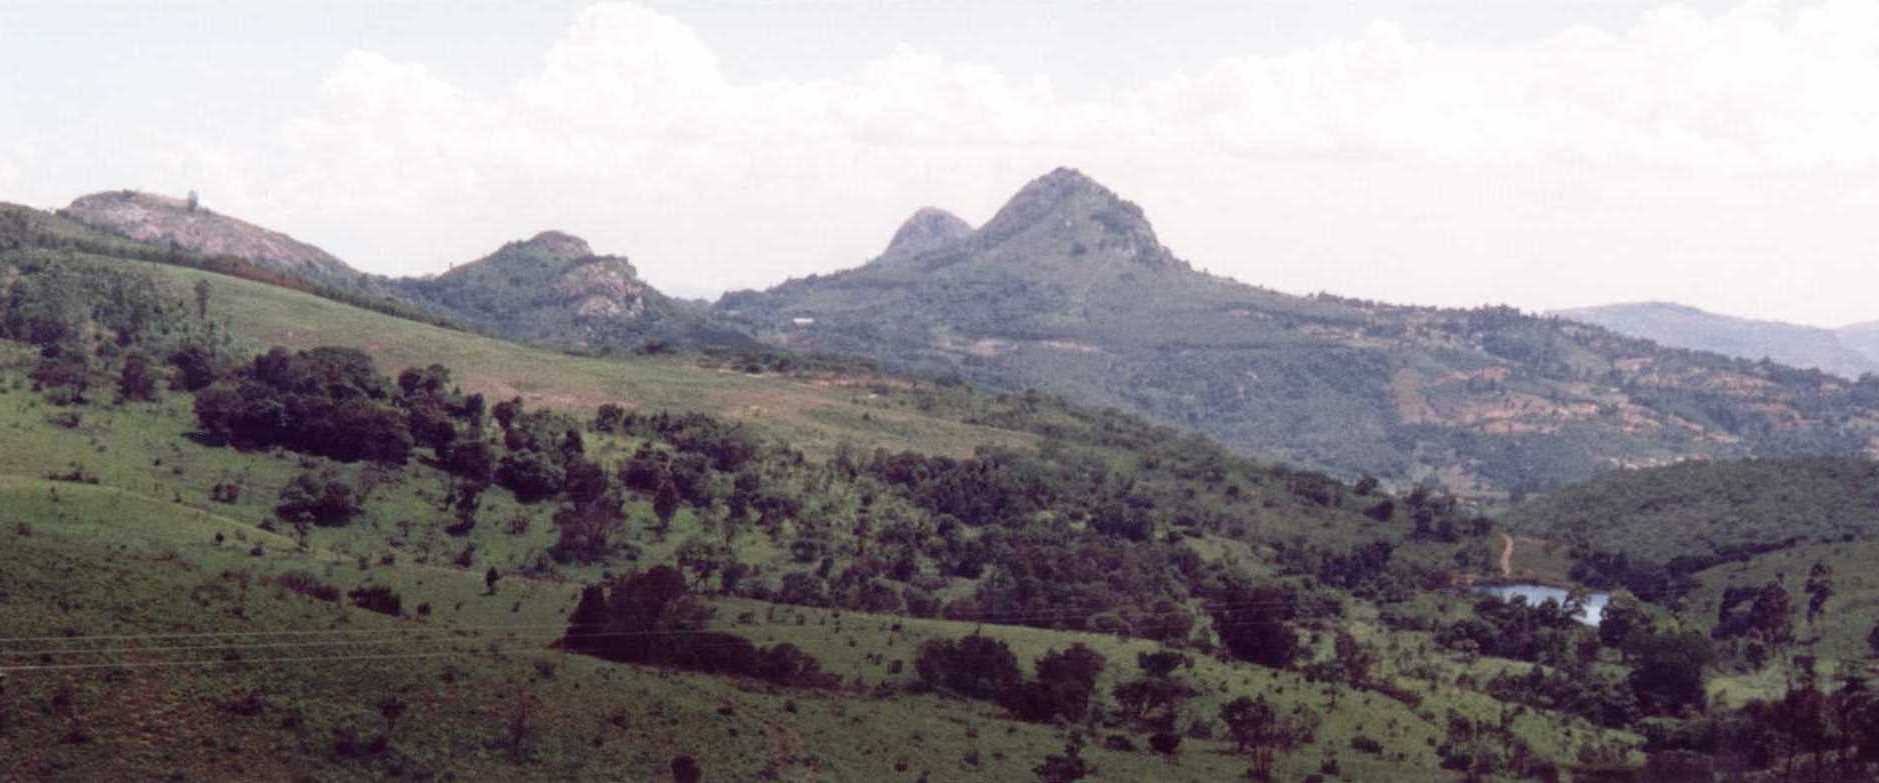 Camel's Hump, Vumba Mountains